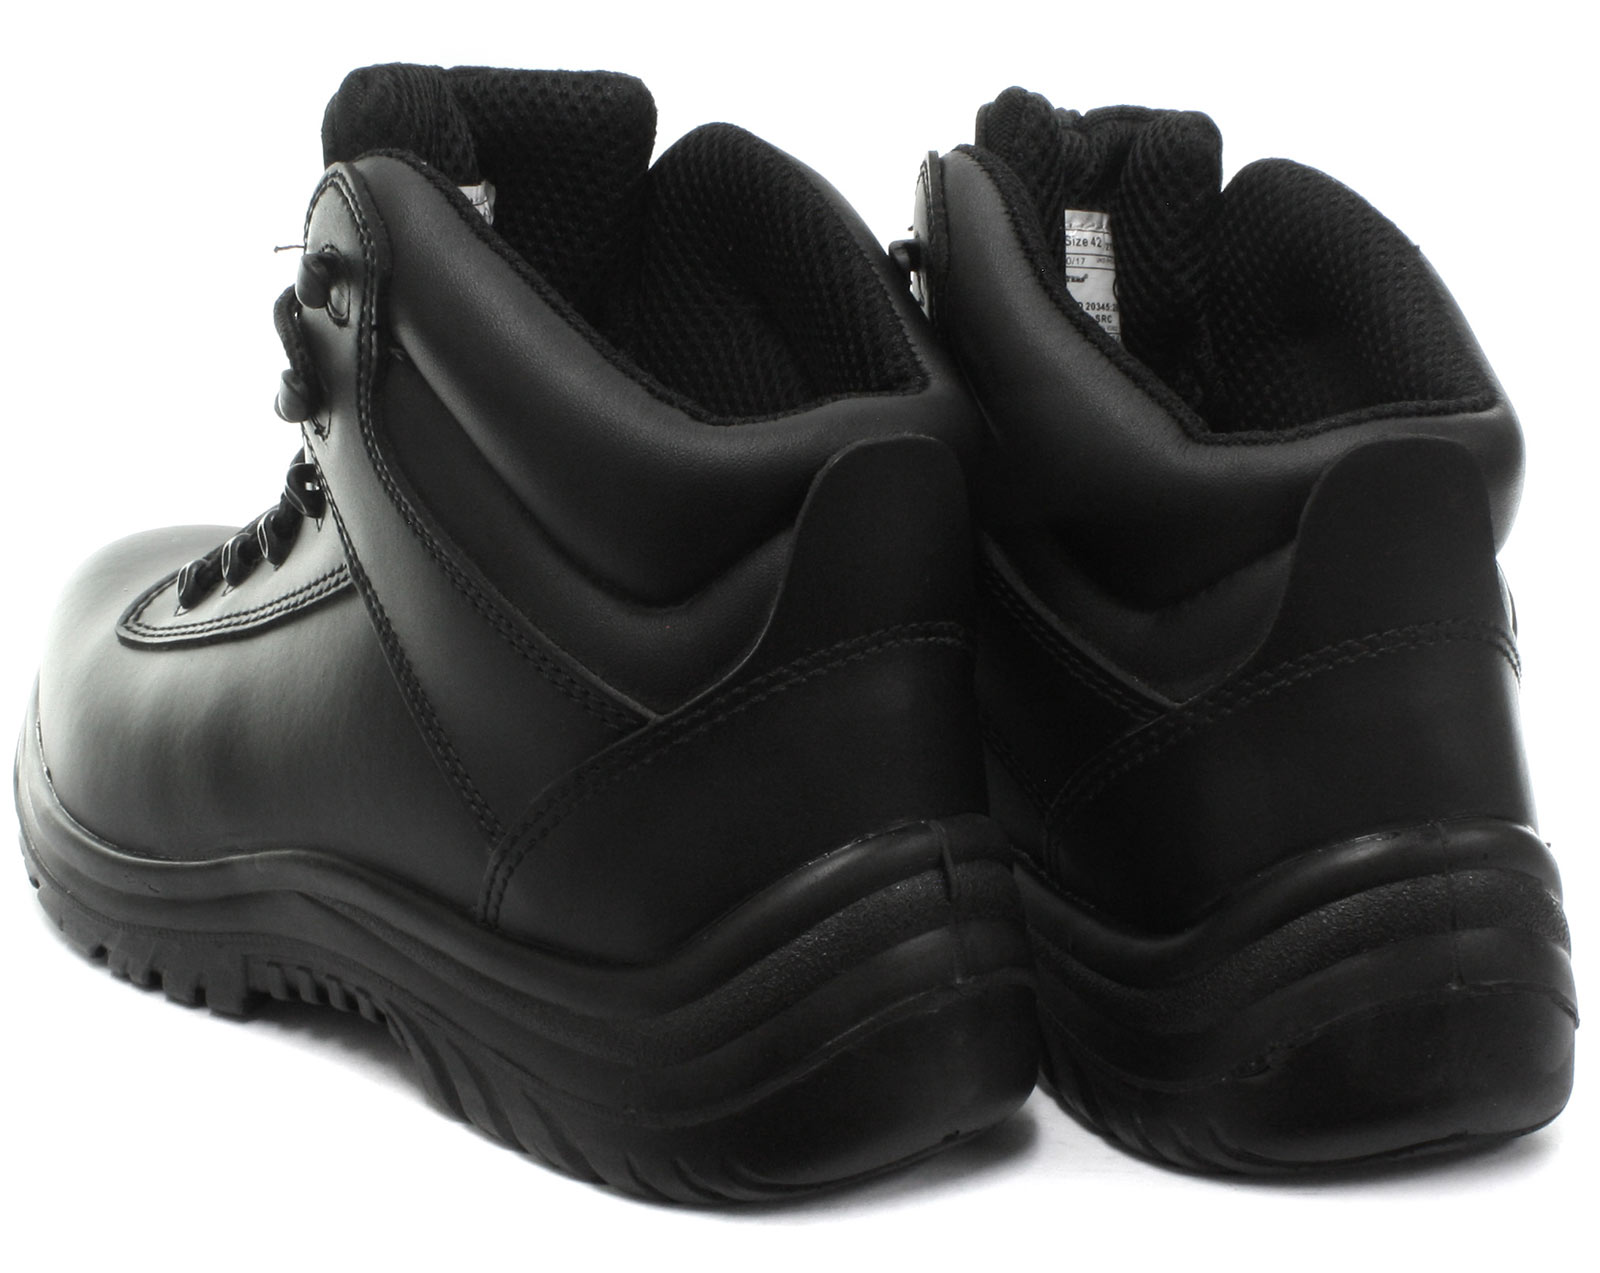 metal Safety Boots New Non All Composite M466a Grafters Sizes Unisex XfSqqwY0p